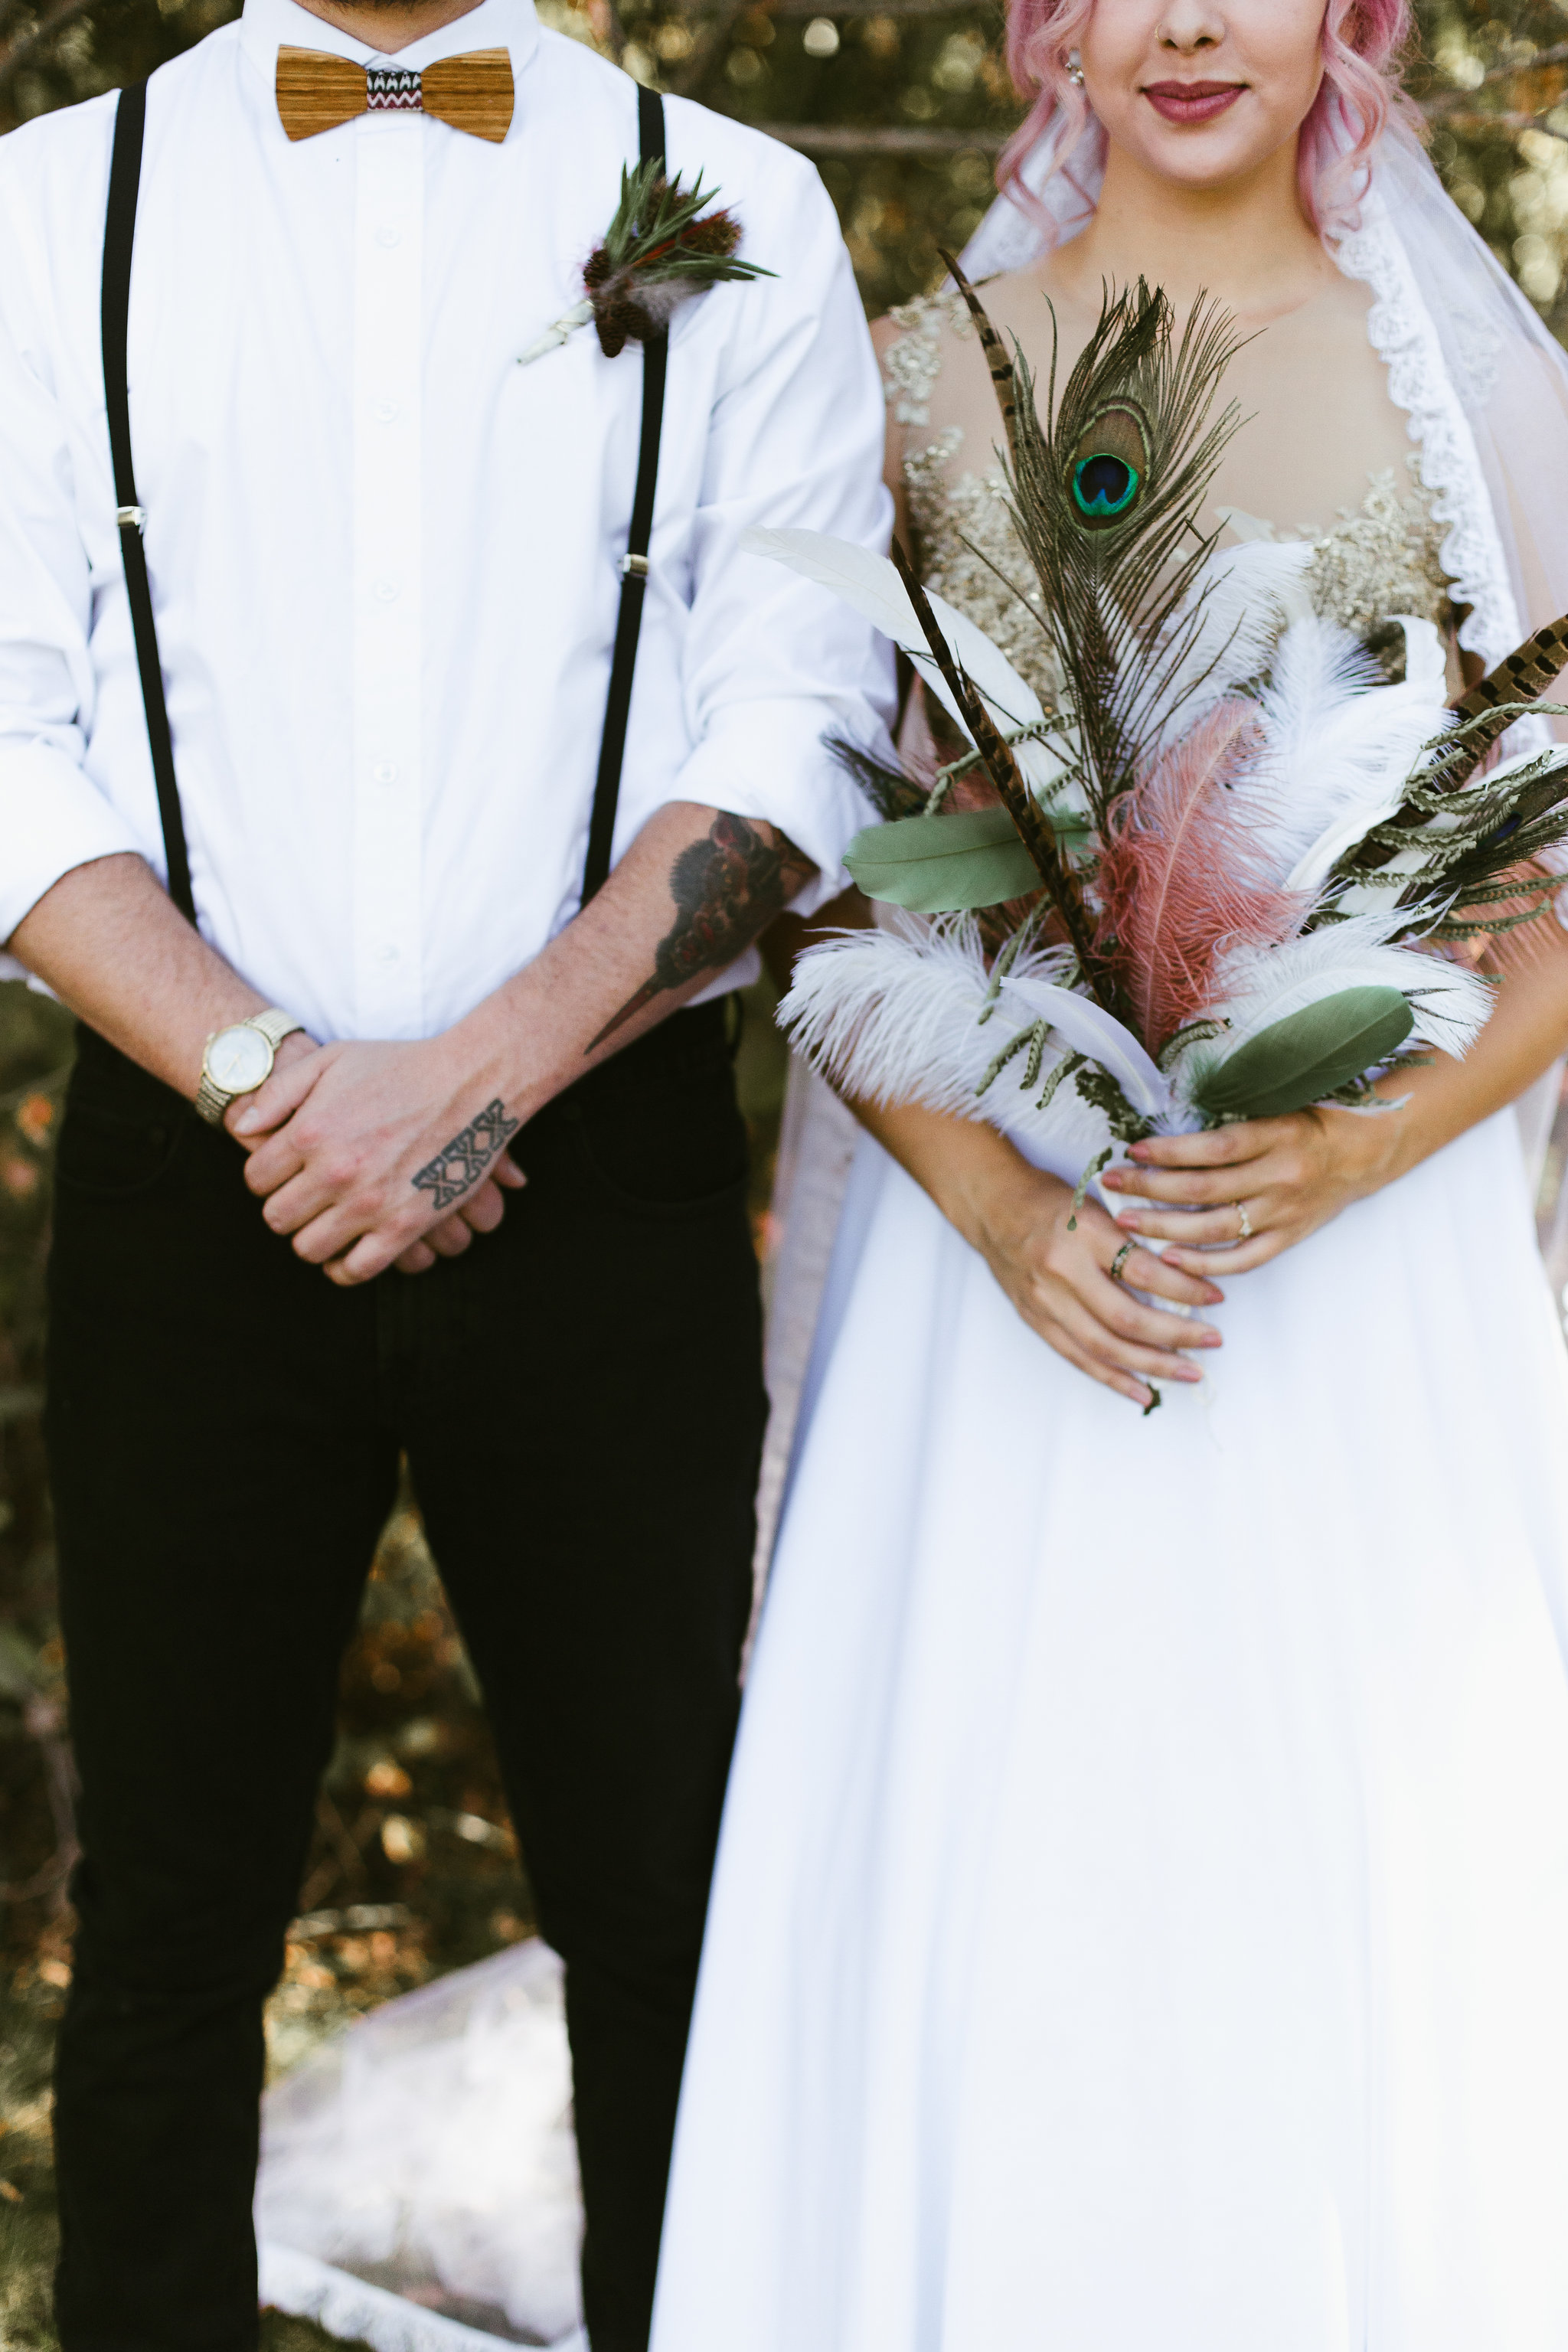 Groom with tattoos and Bride with pink hair and gold wedding dress